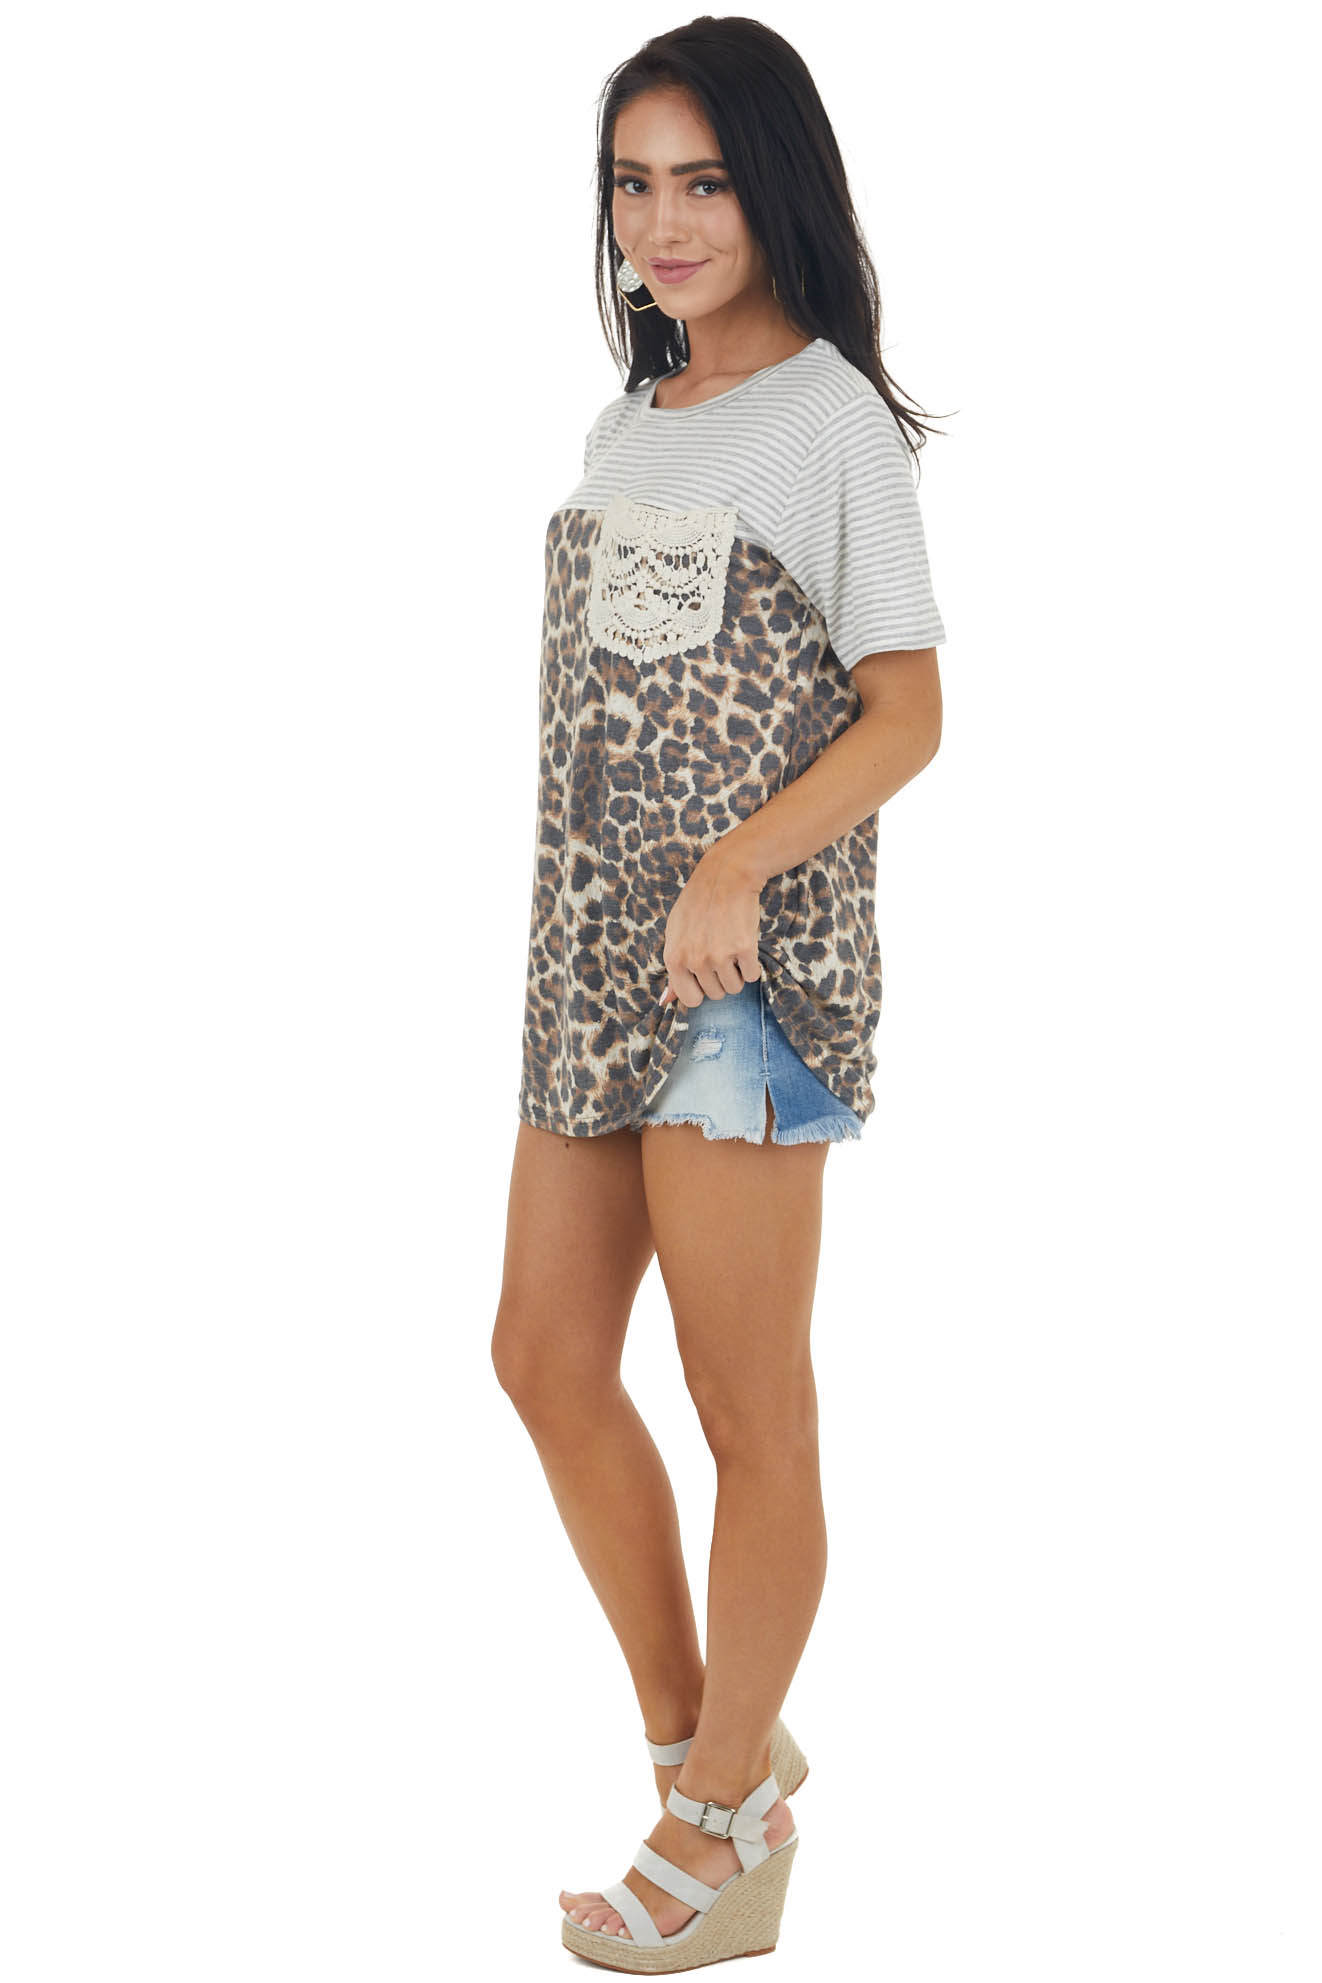 Cognac Leopard Print and Stripe Knit Tee with Lace Pocket